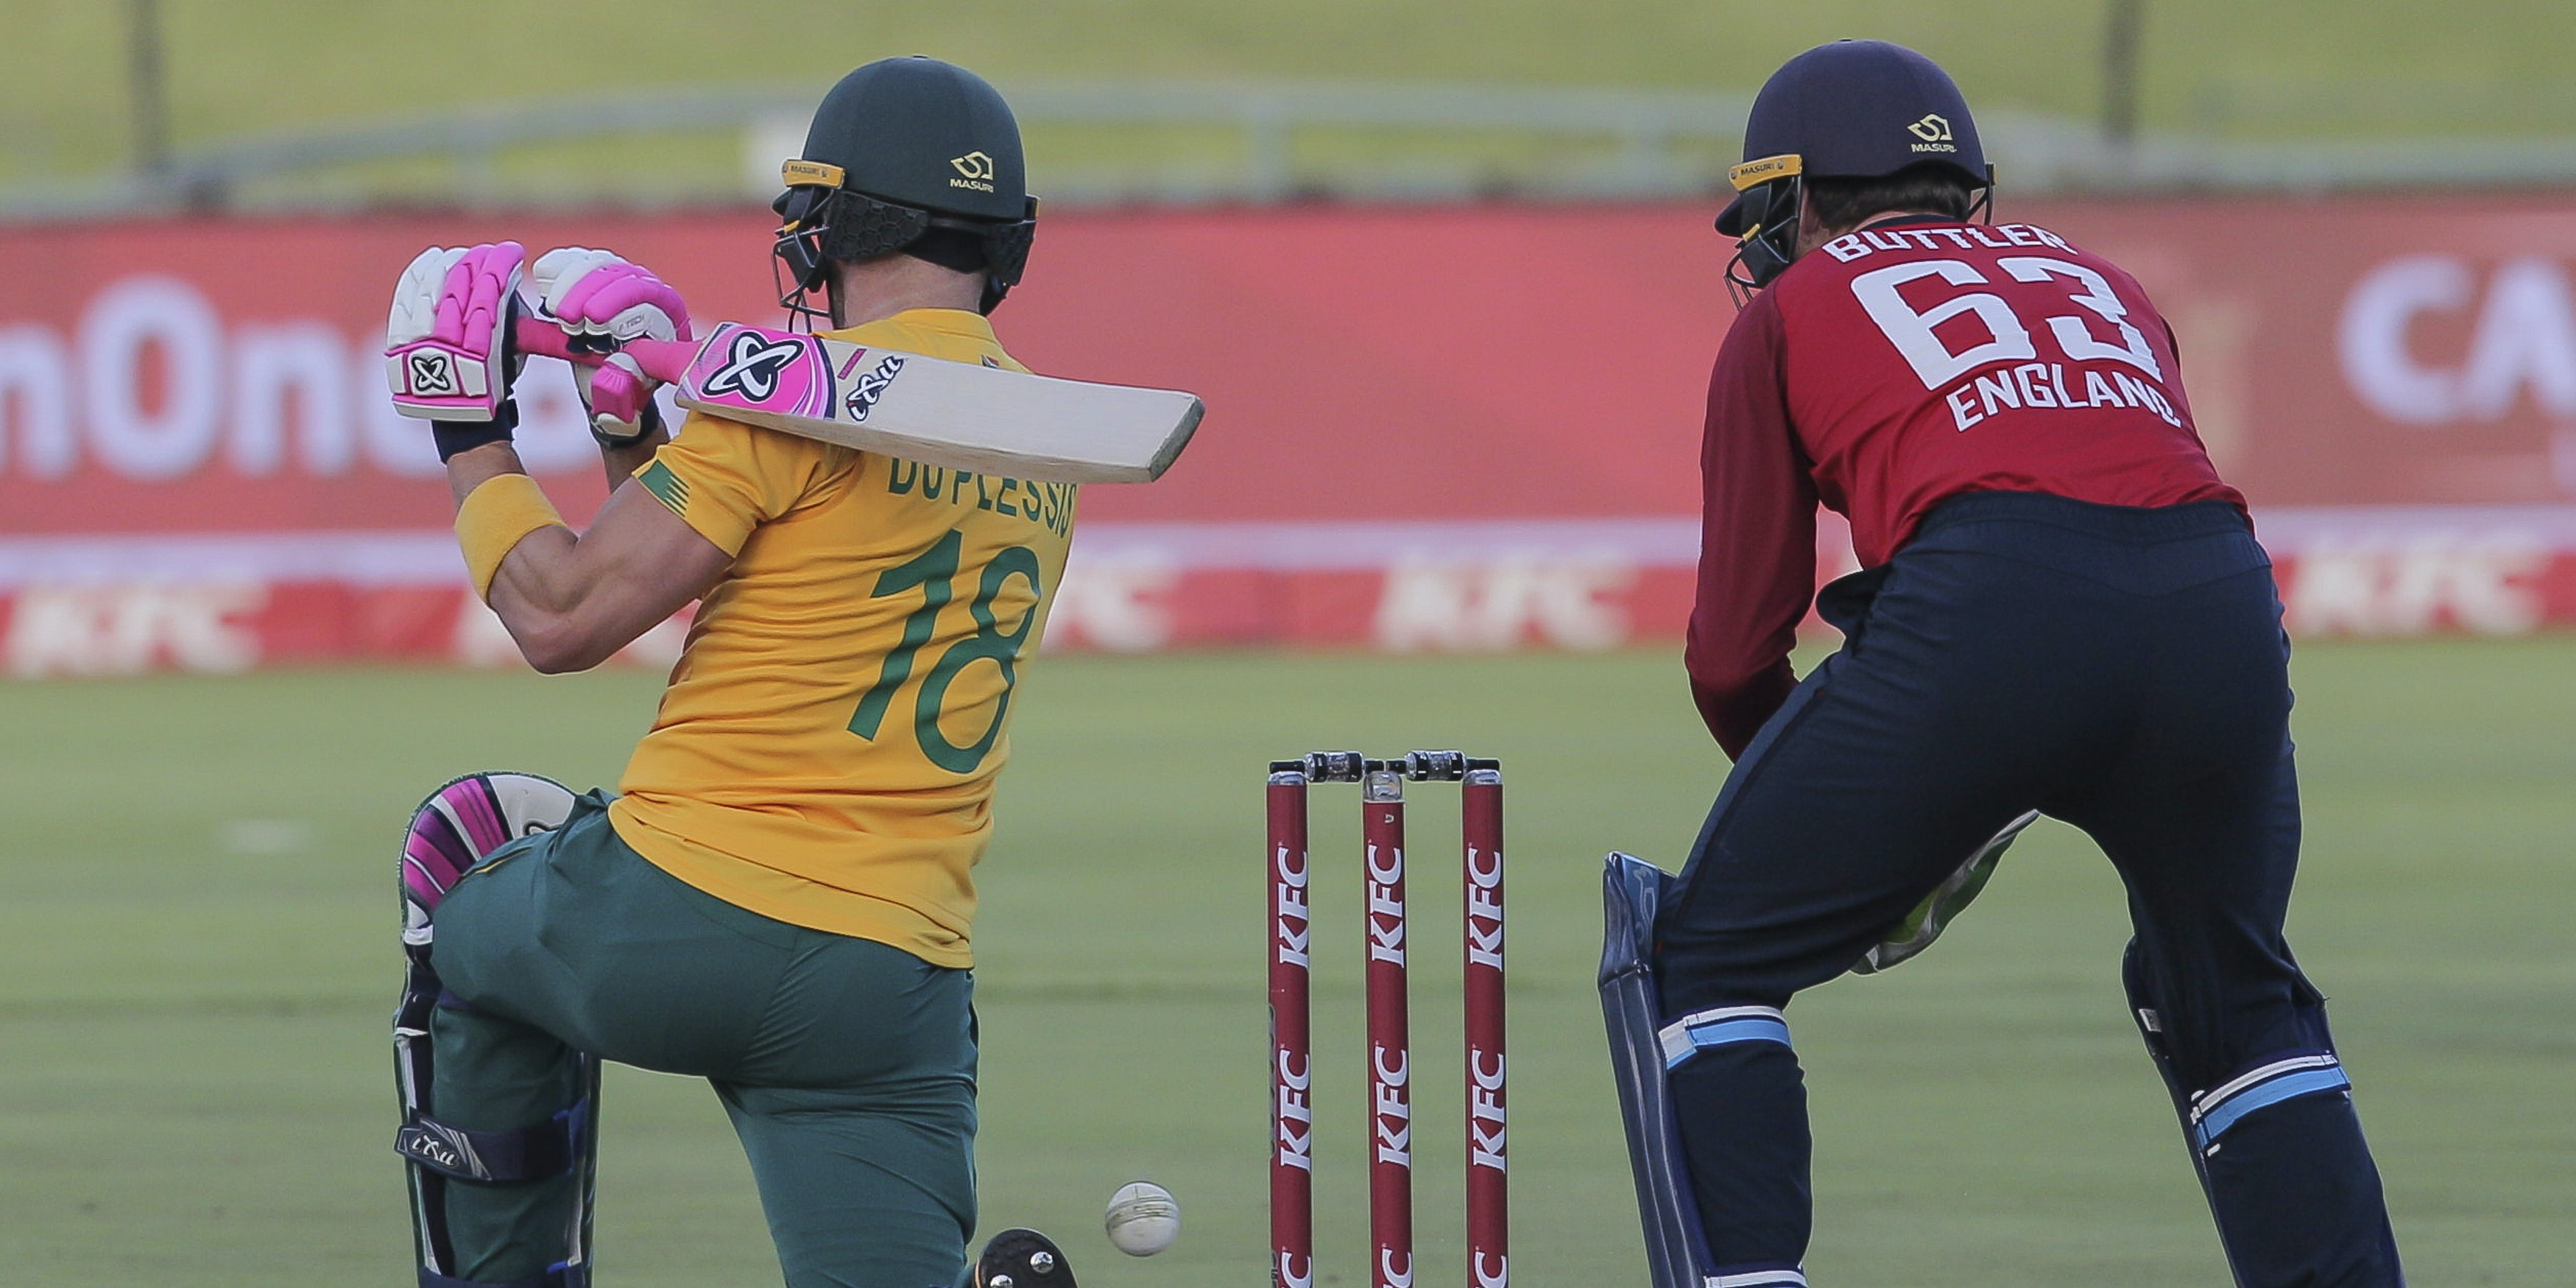 England's first ODI against South Africa postponed after positive Covid-19 test